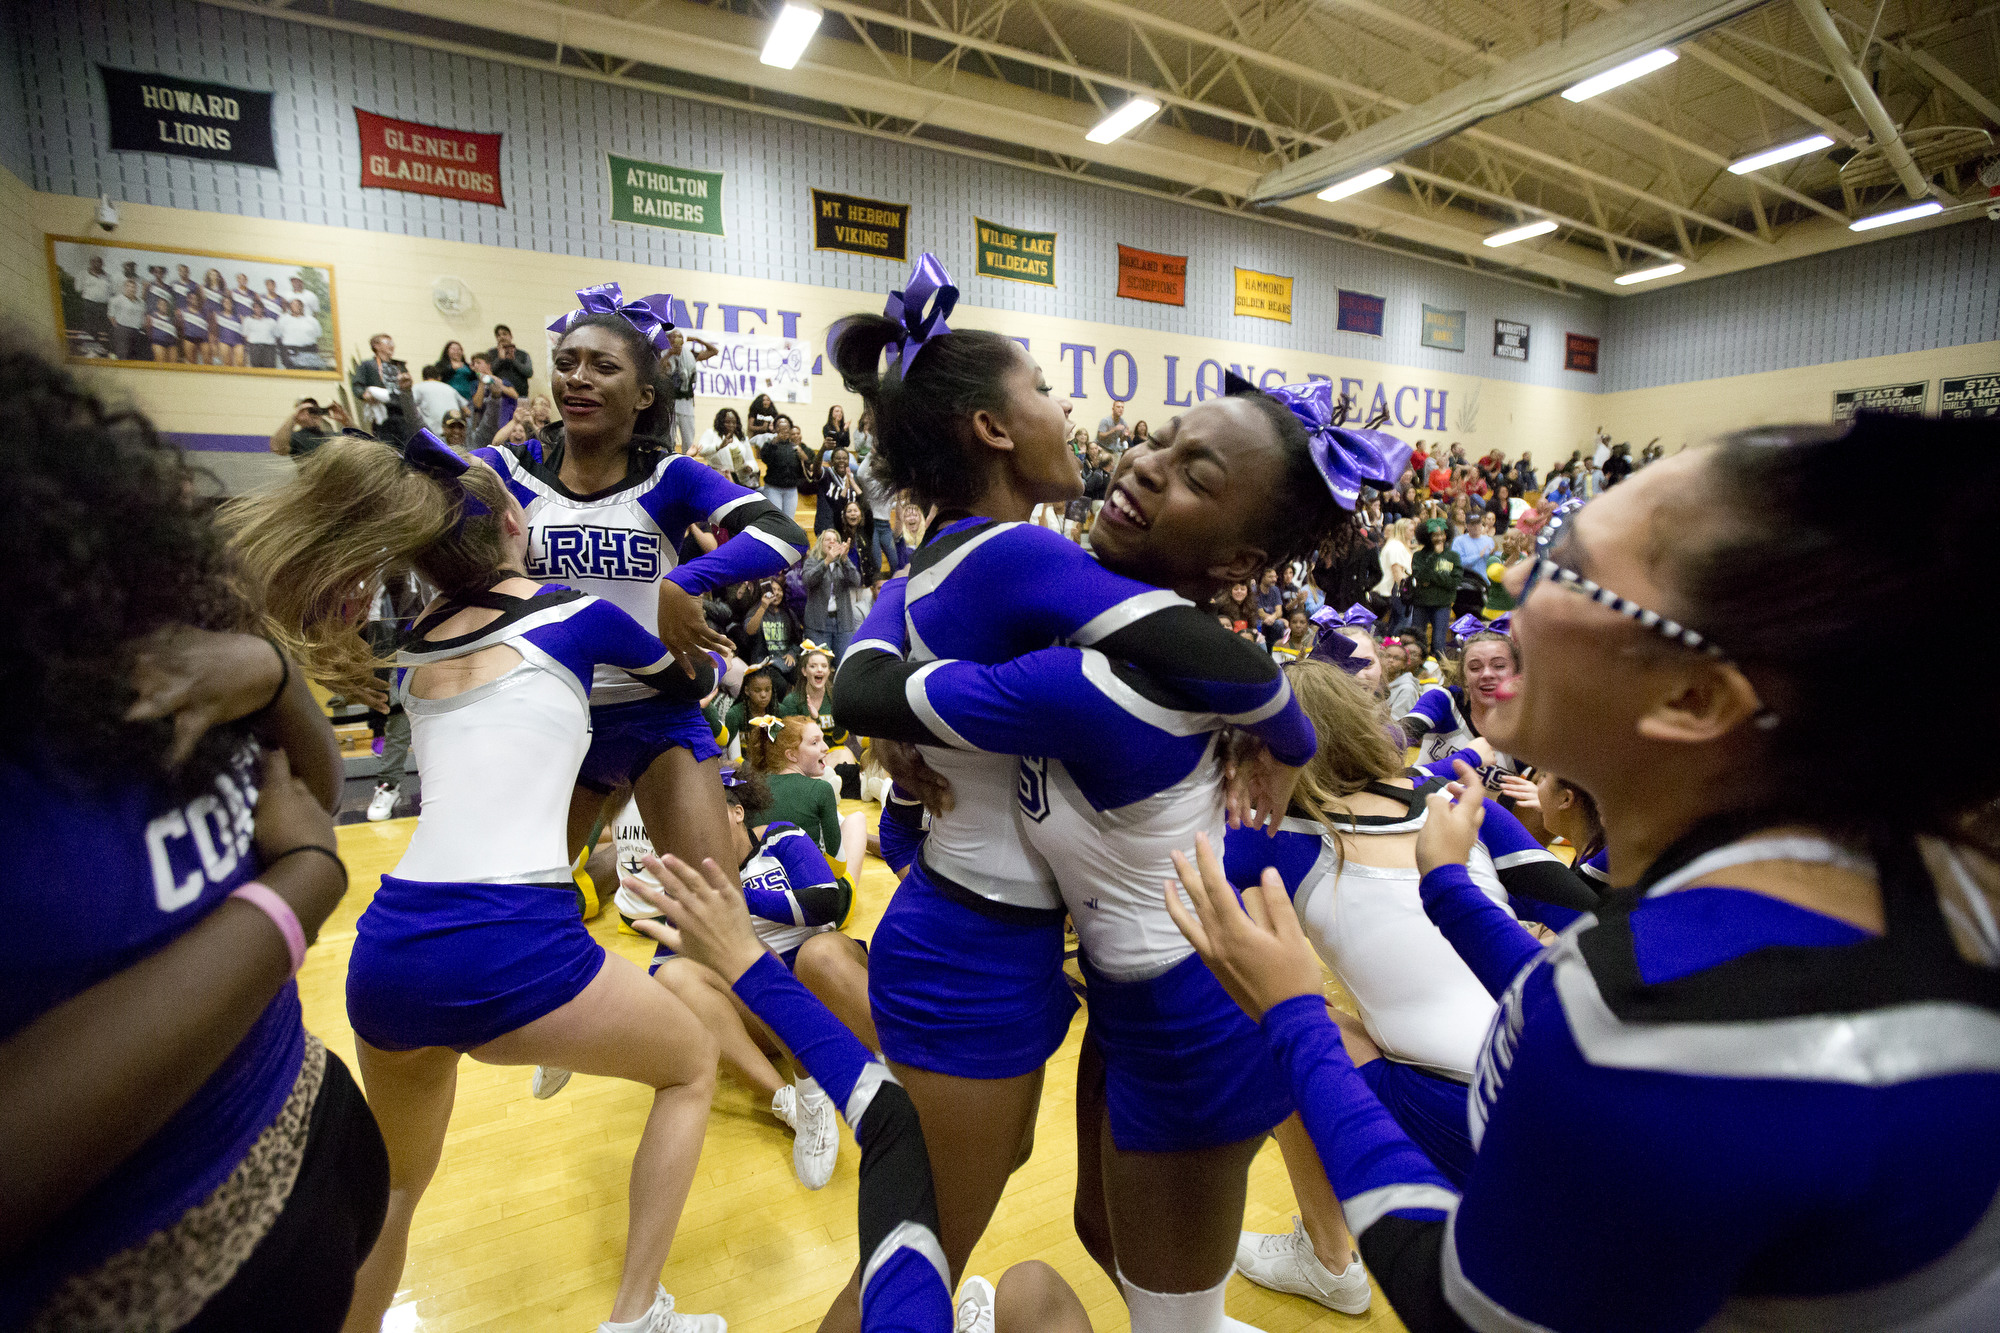 Lots to cheer about at the Howard County Cheerleading Championships